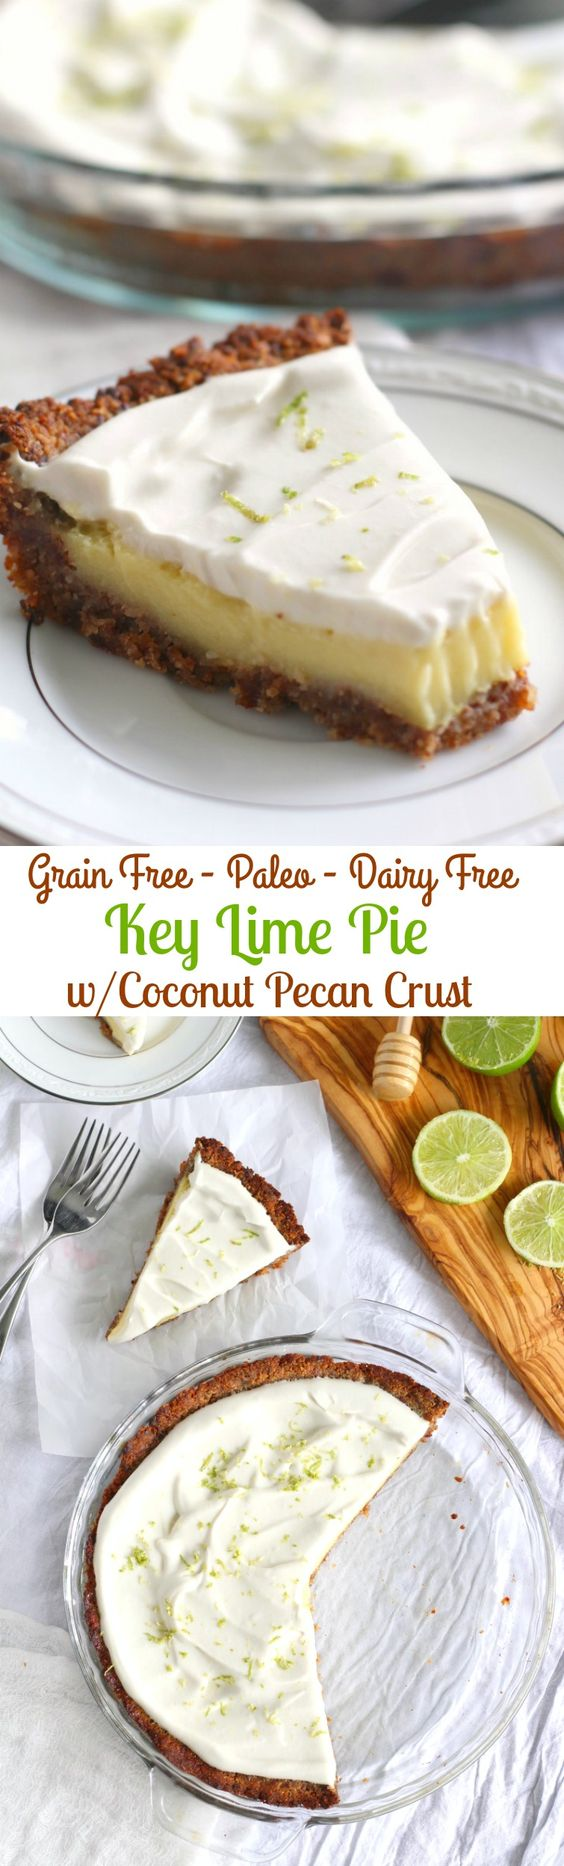 key lime pie with coconut pecan crust - vegan, gluten free